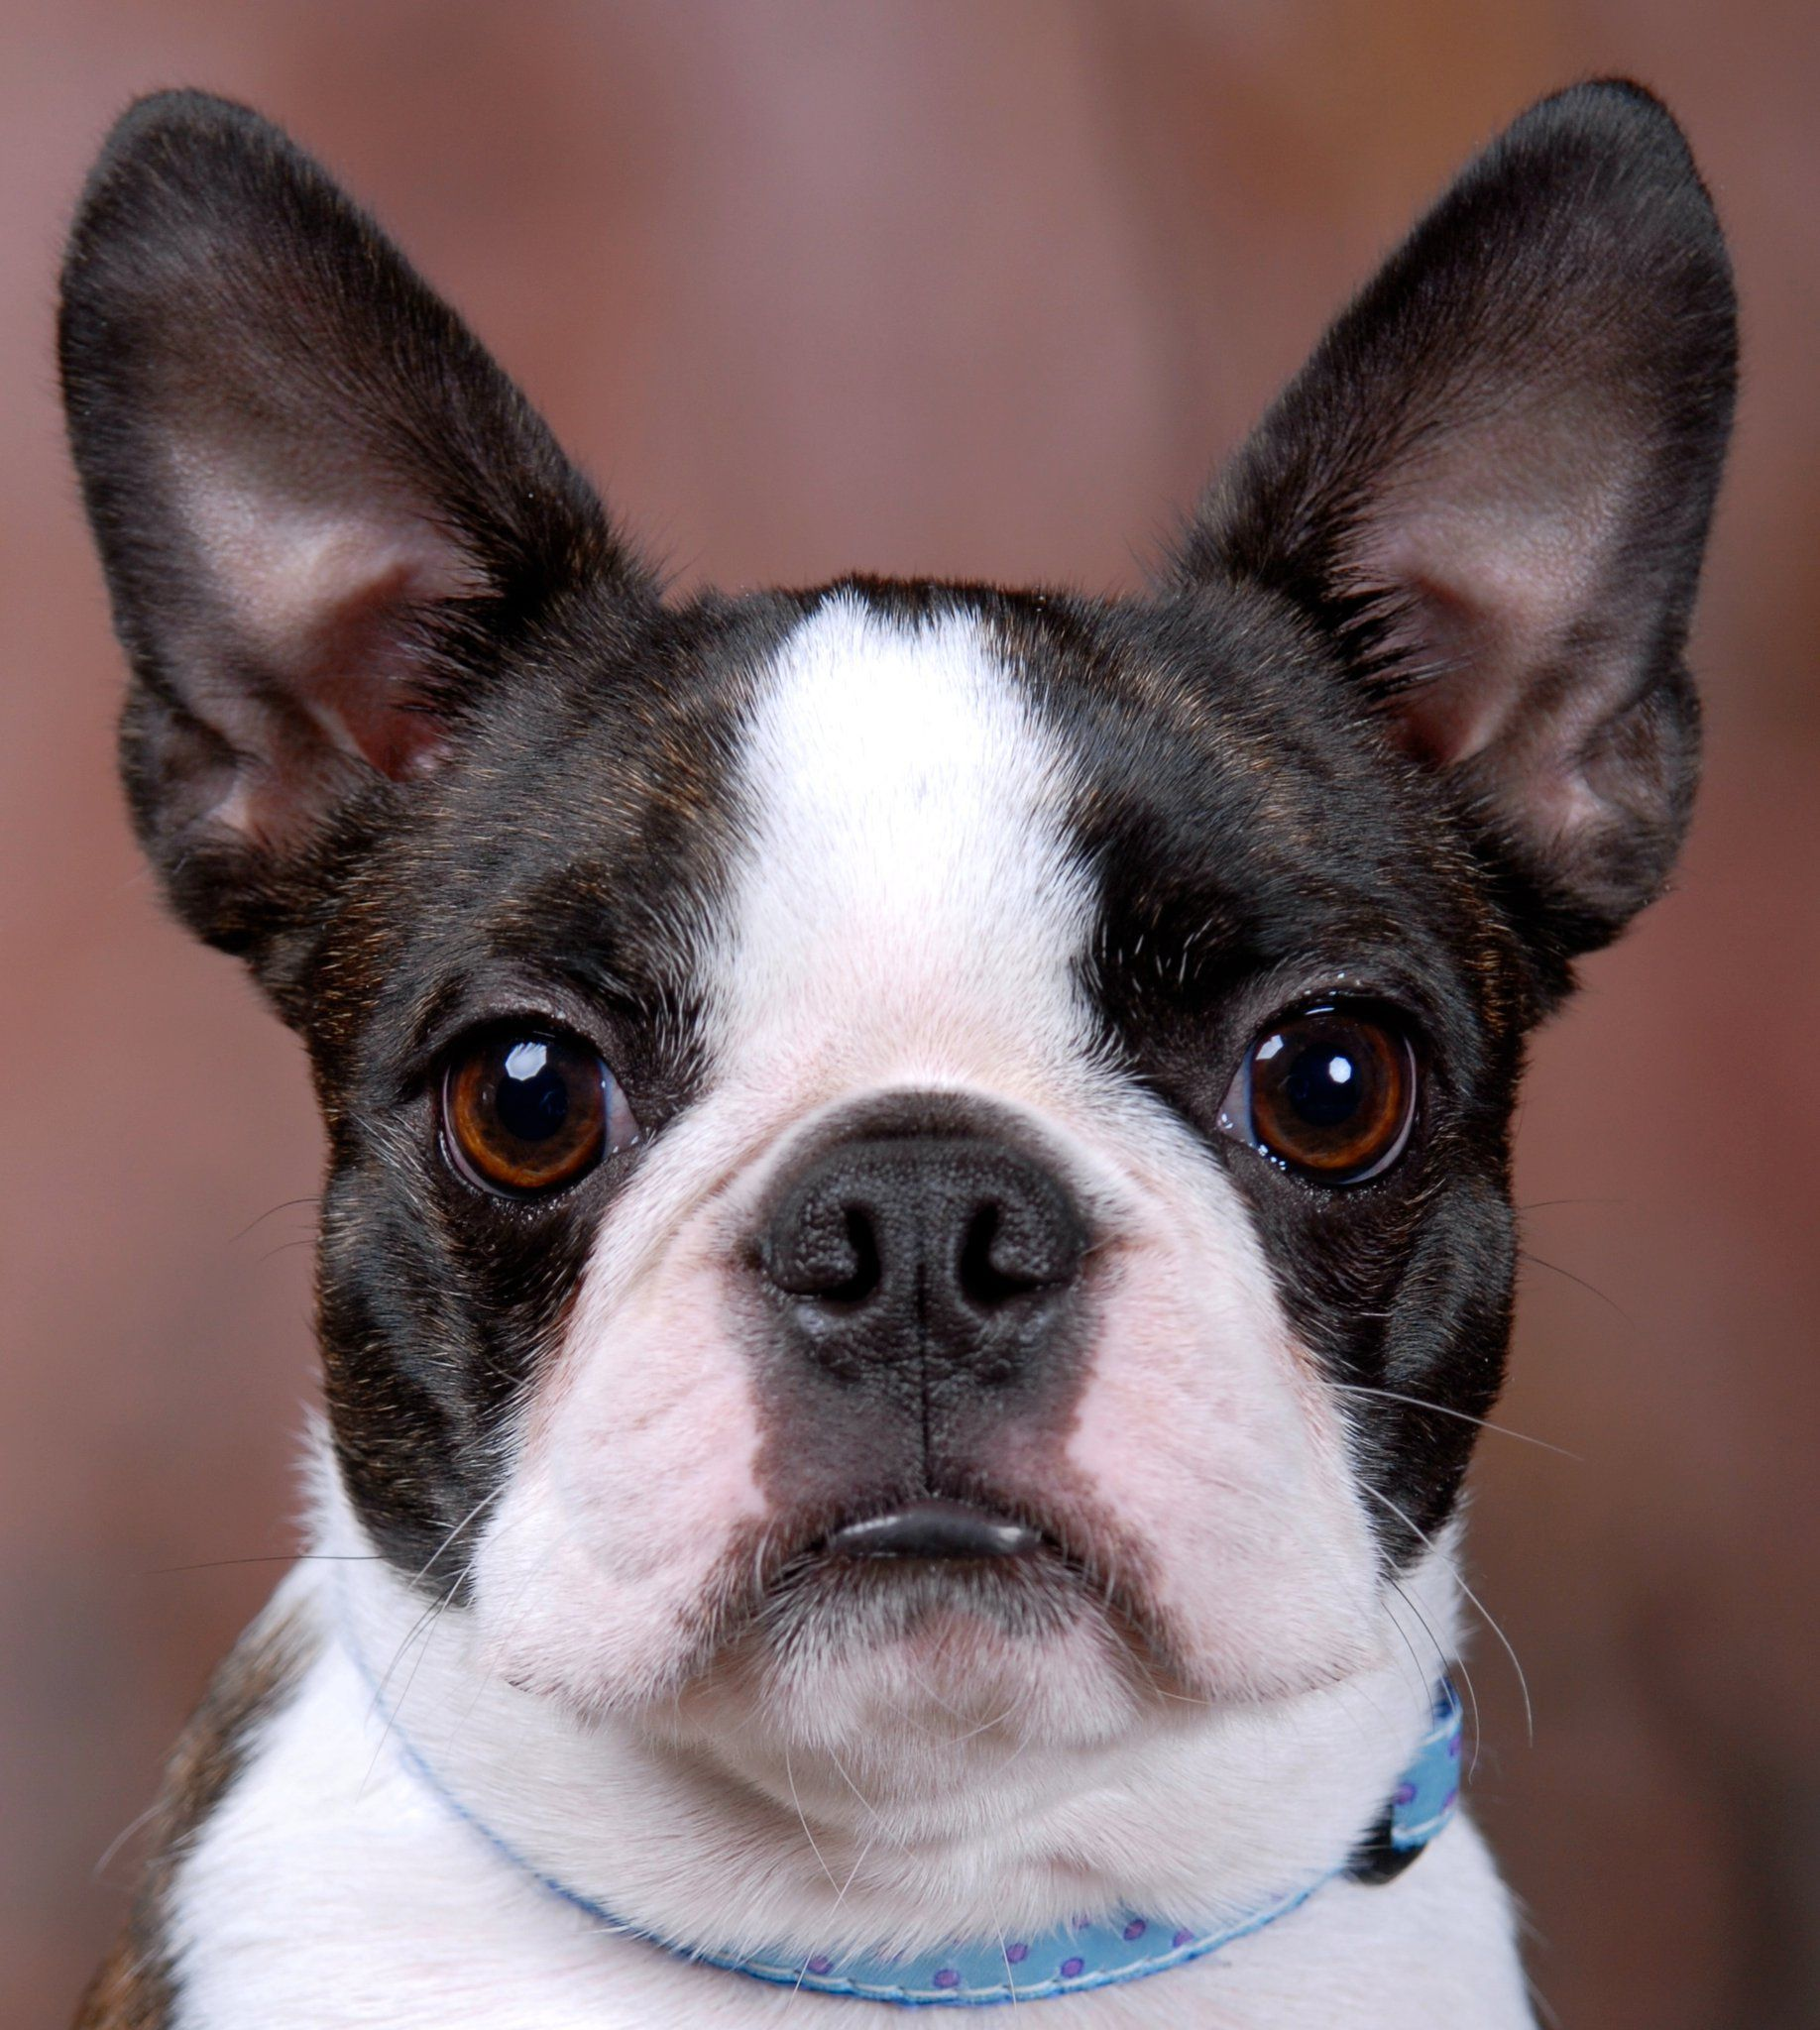 Boston Terrier, looks like Gracie's littermate. Boston